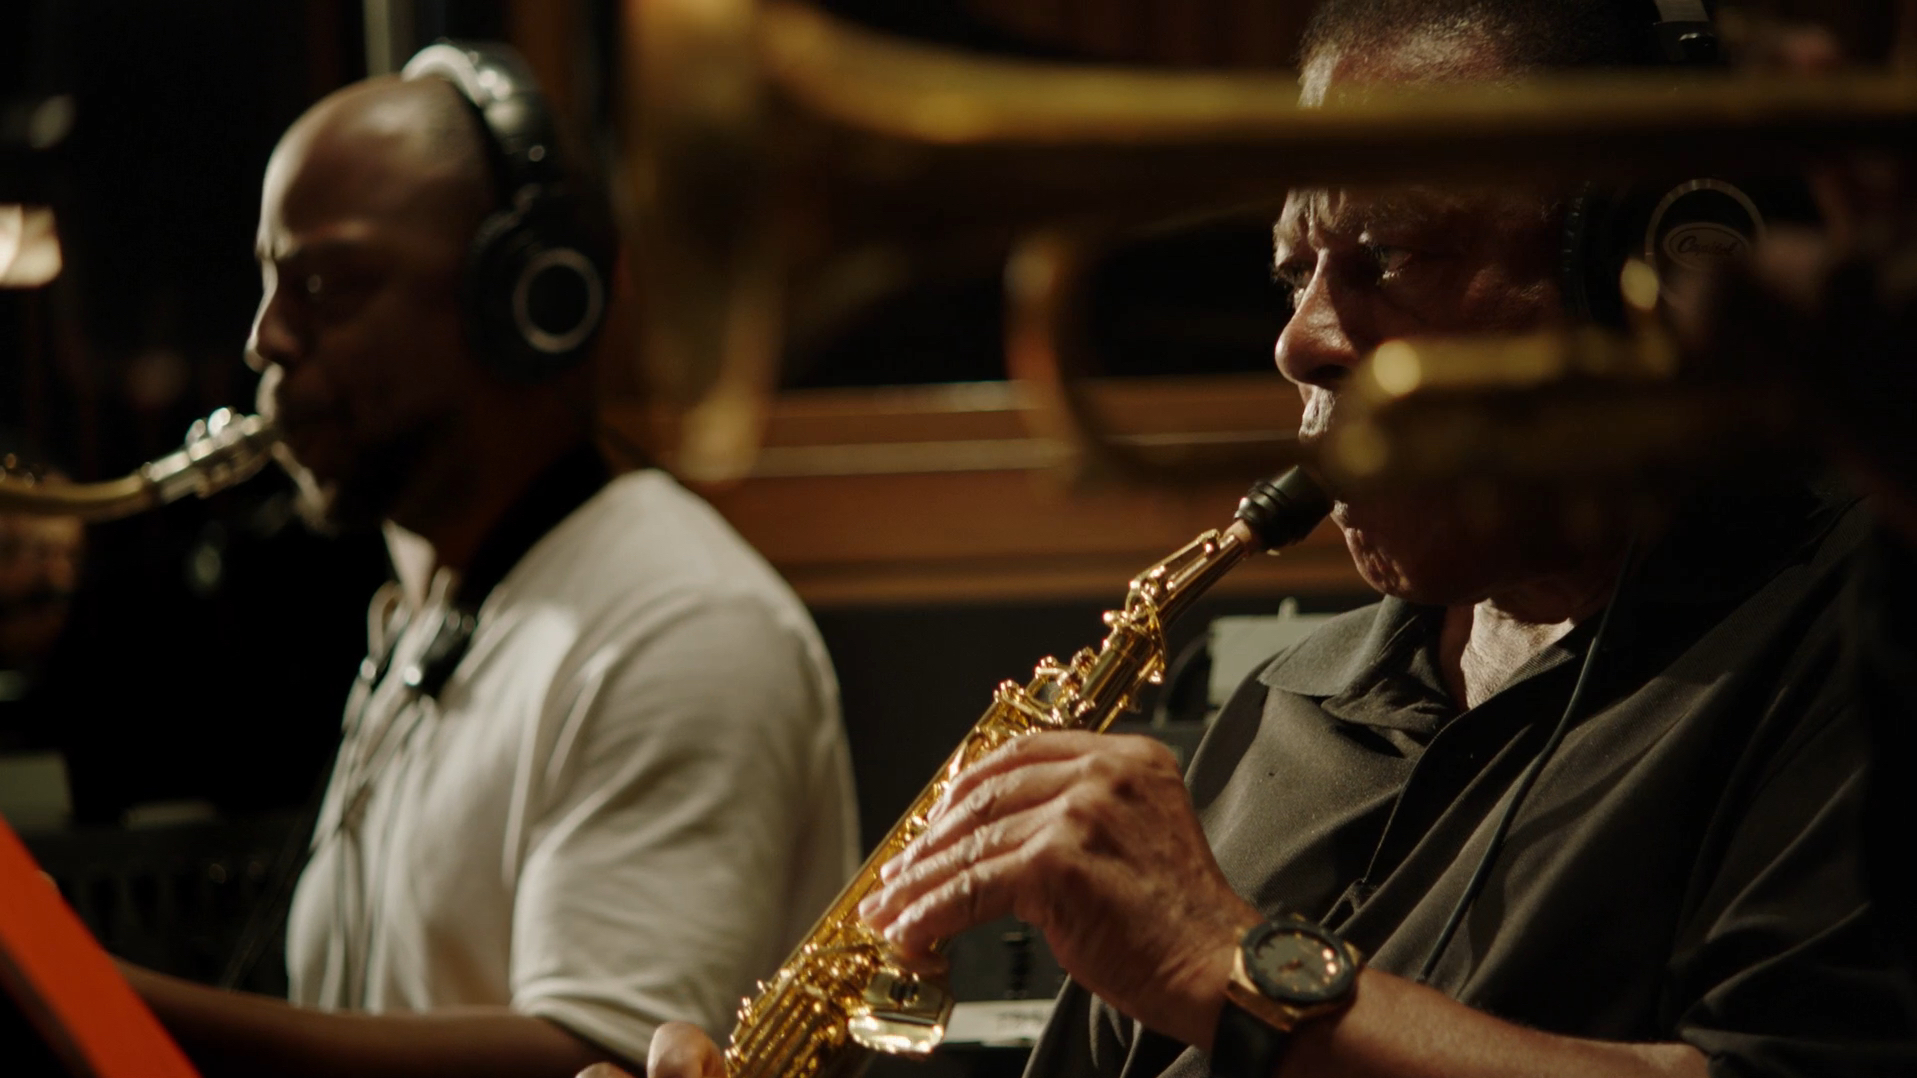 New Documentary 'Blue Note: Beyond The Notes' Surpasses Its Purpose